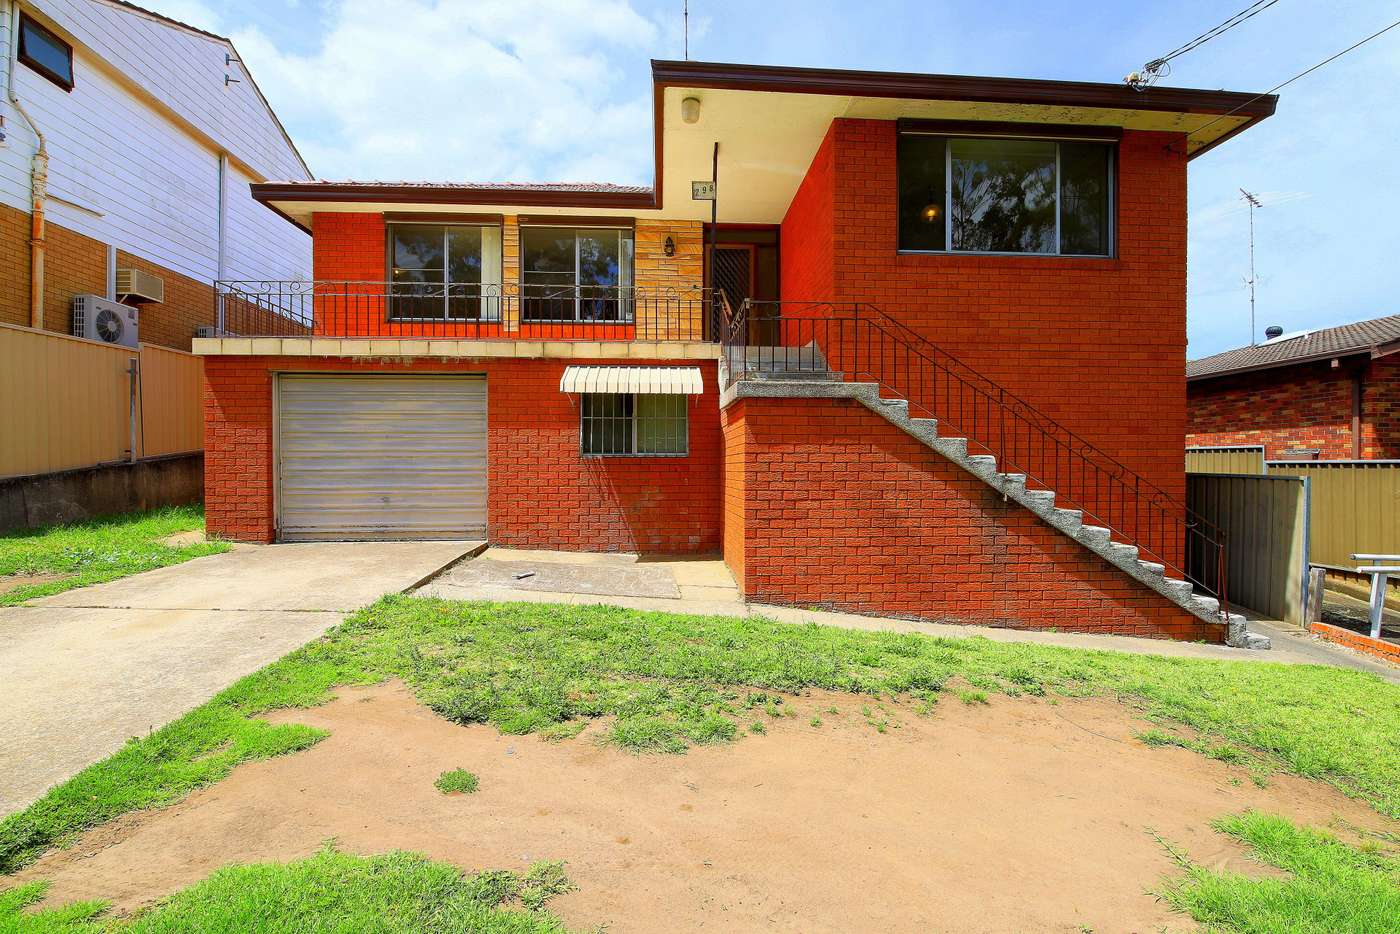 Main view of Homely house listing, 298 Marion Street, Condell Park NSW 2200